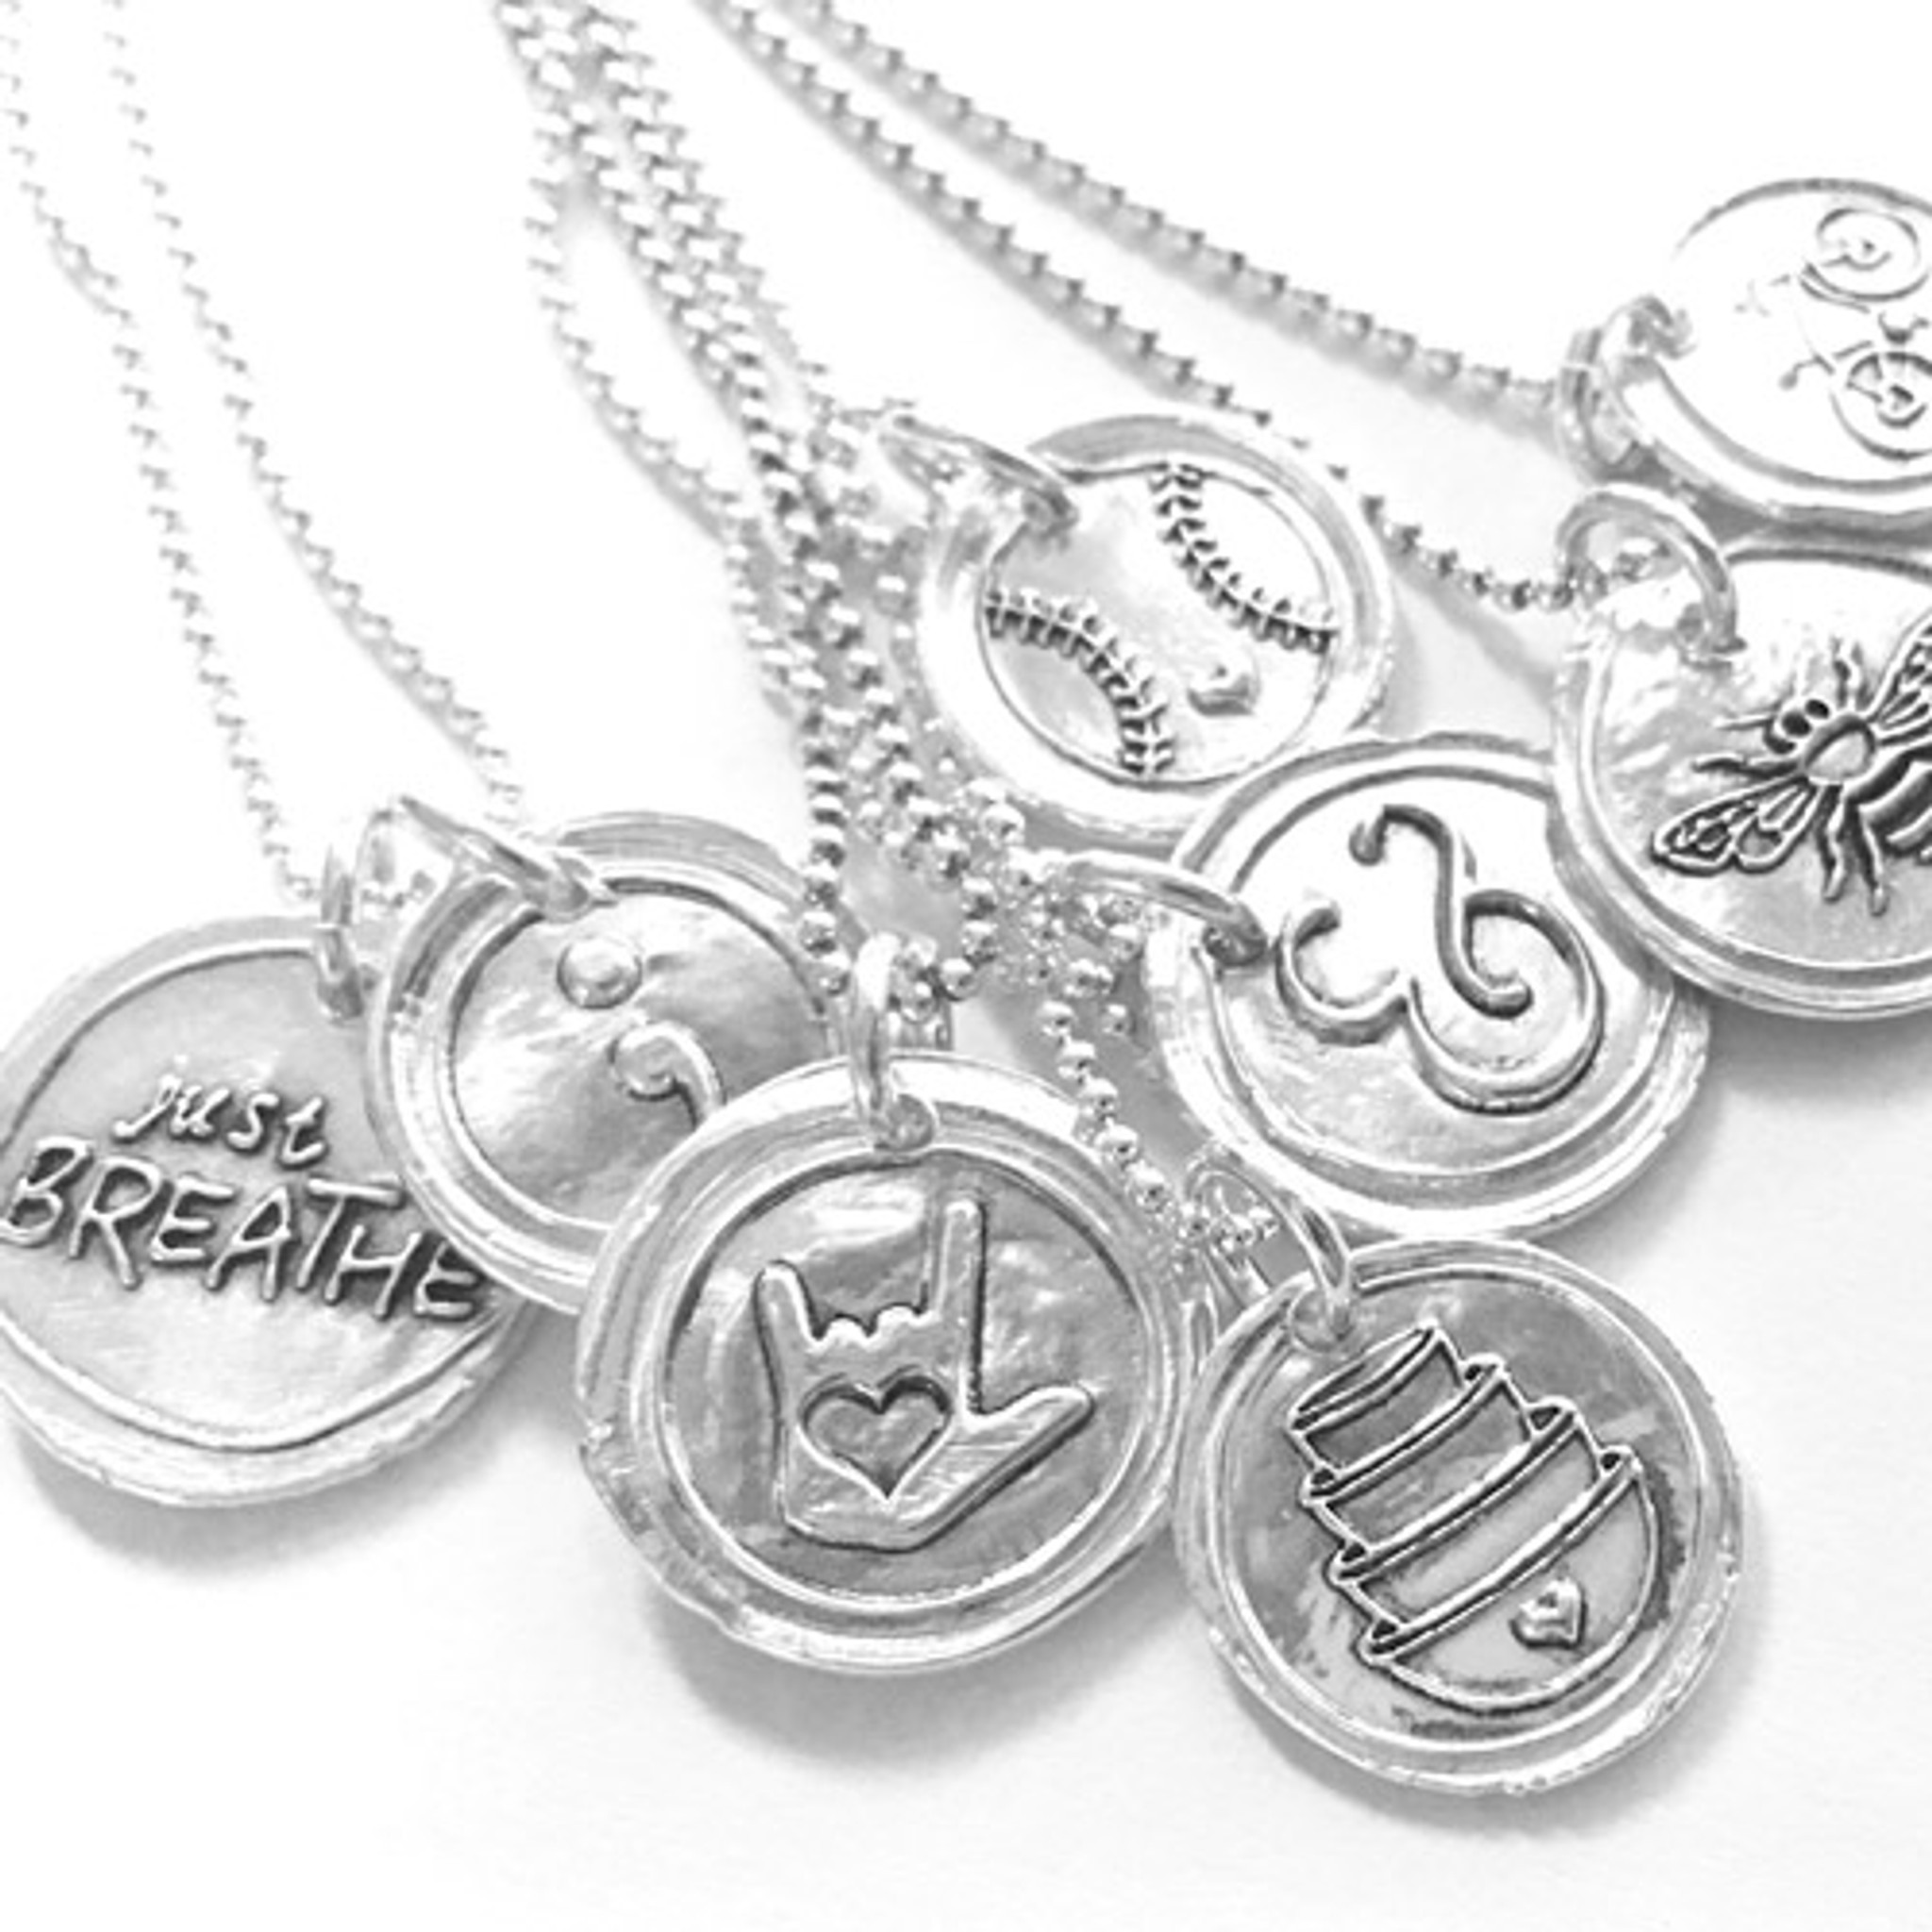 We are so excited about these new Wax Seal Designs!